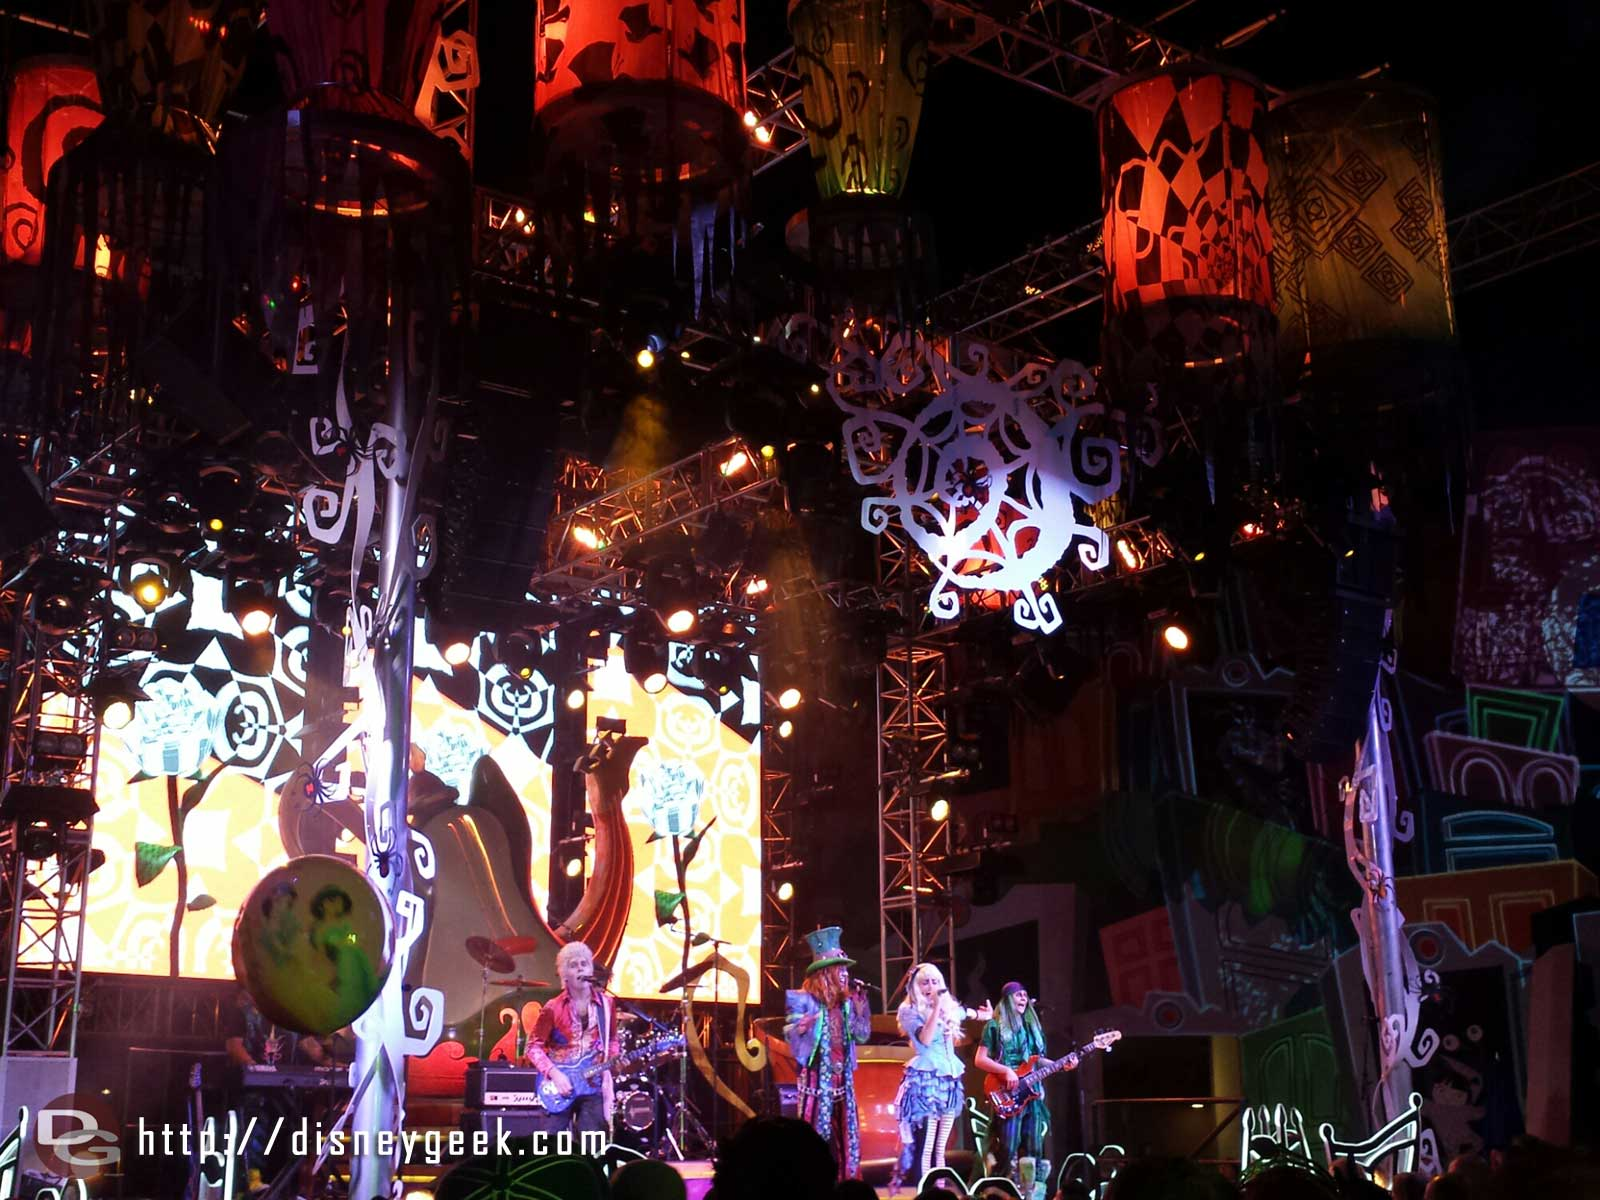 Stopped by yhe #MadTParty while the band was performing